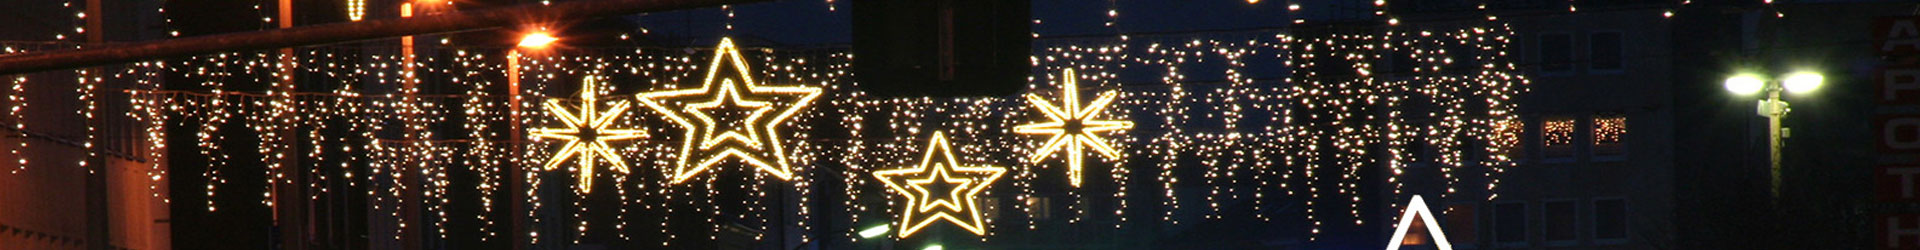 led Christmas lights manufacturers